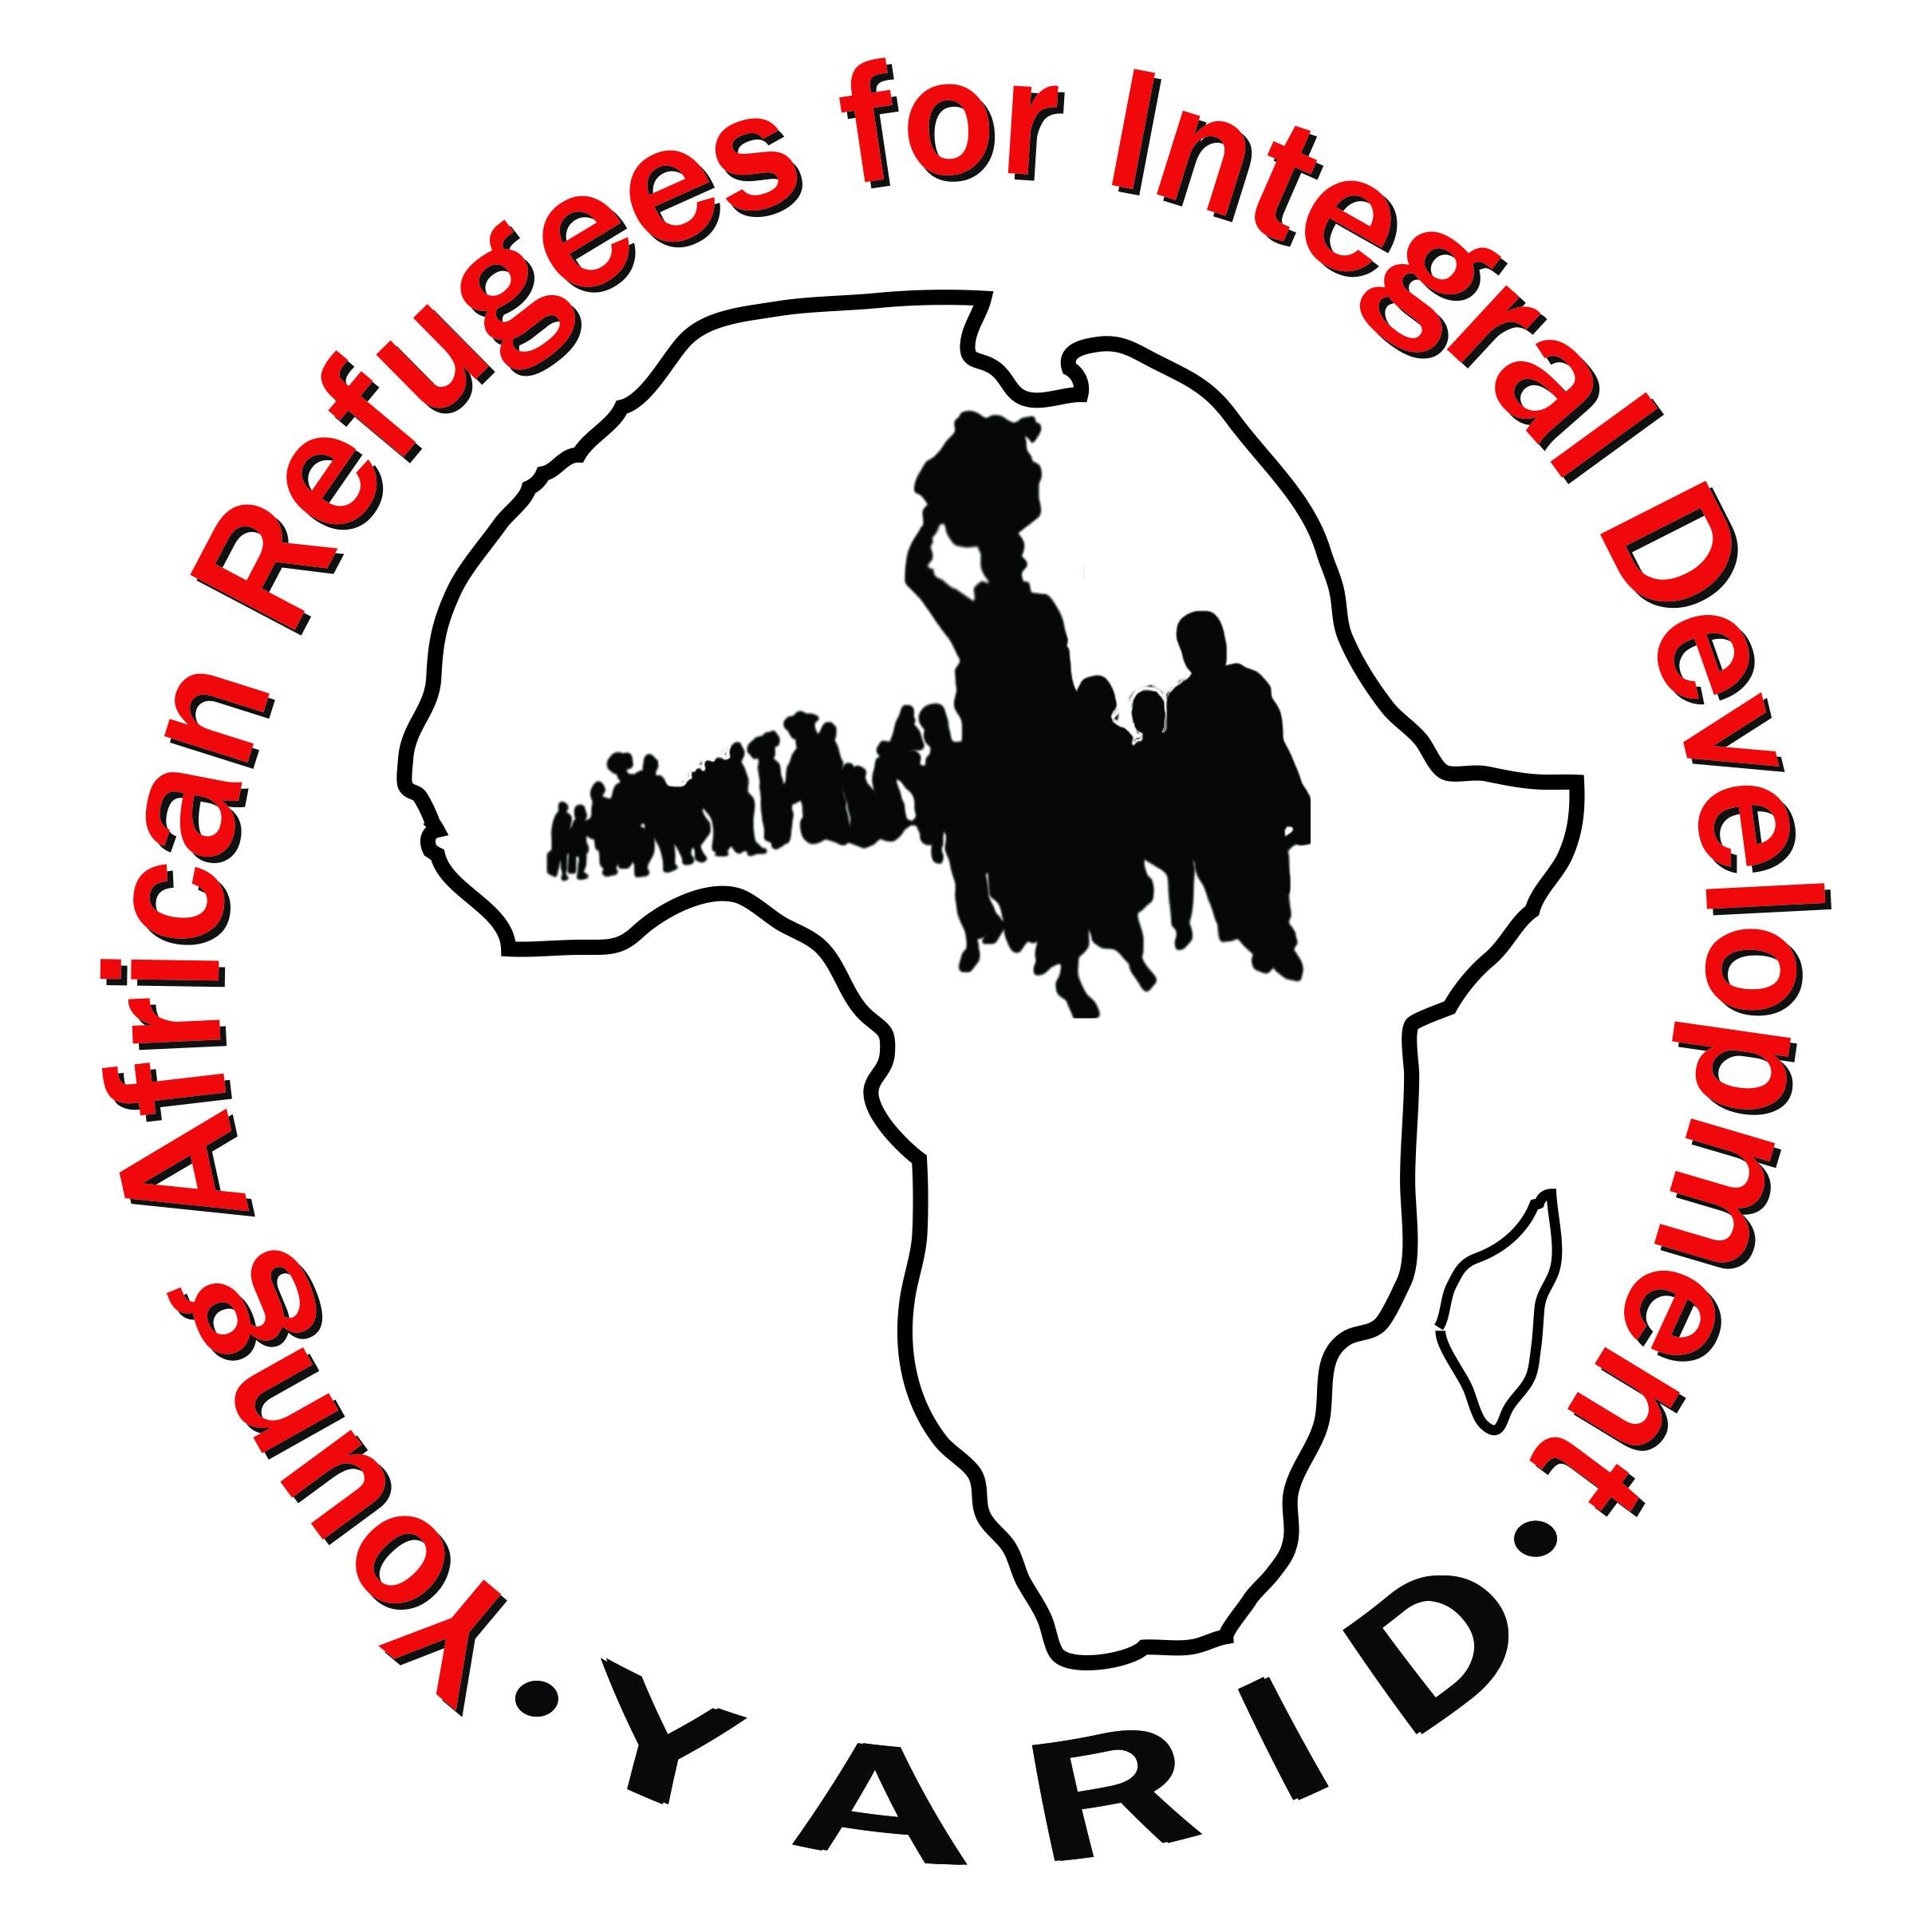 Young African Refugees for Integral Development (YARID)